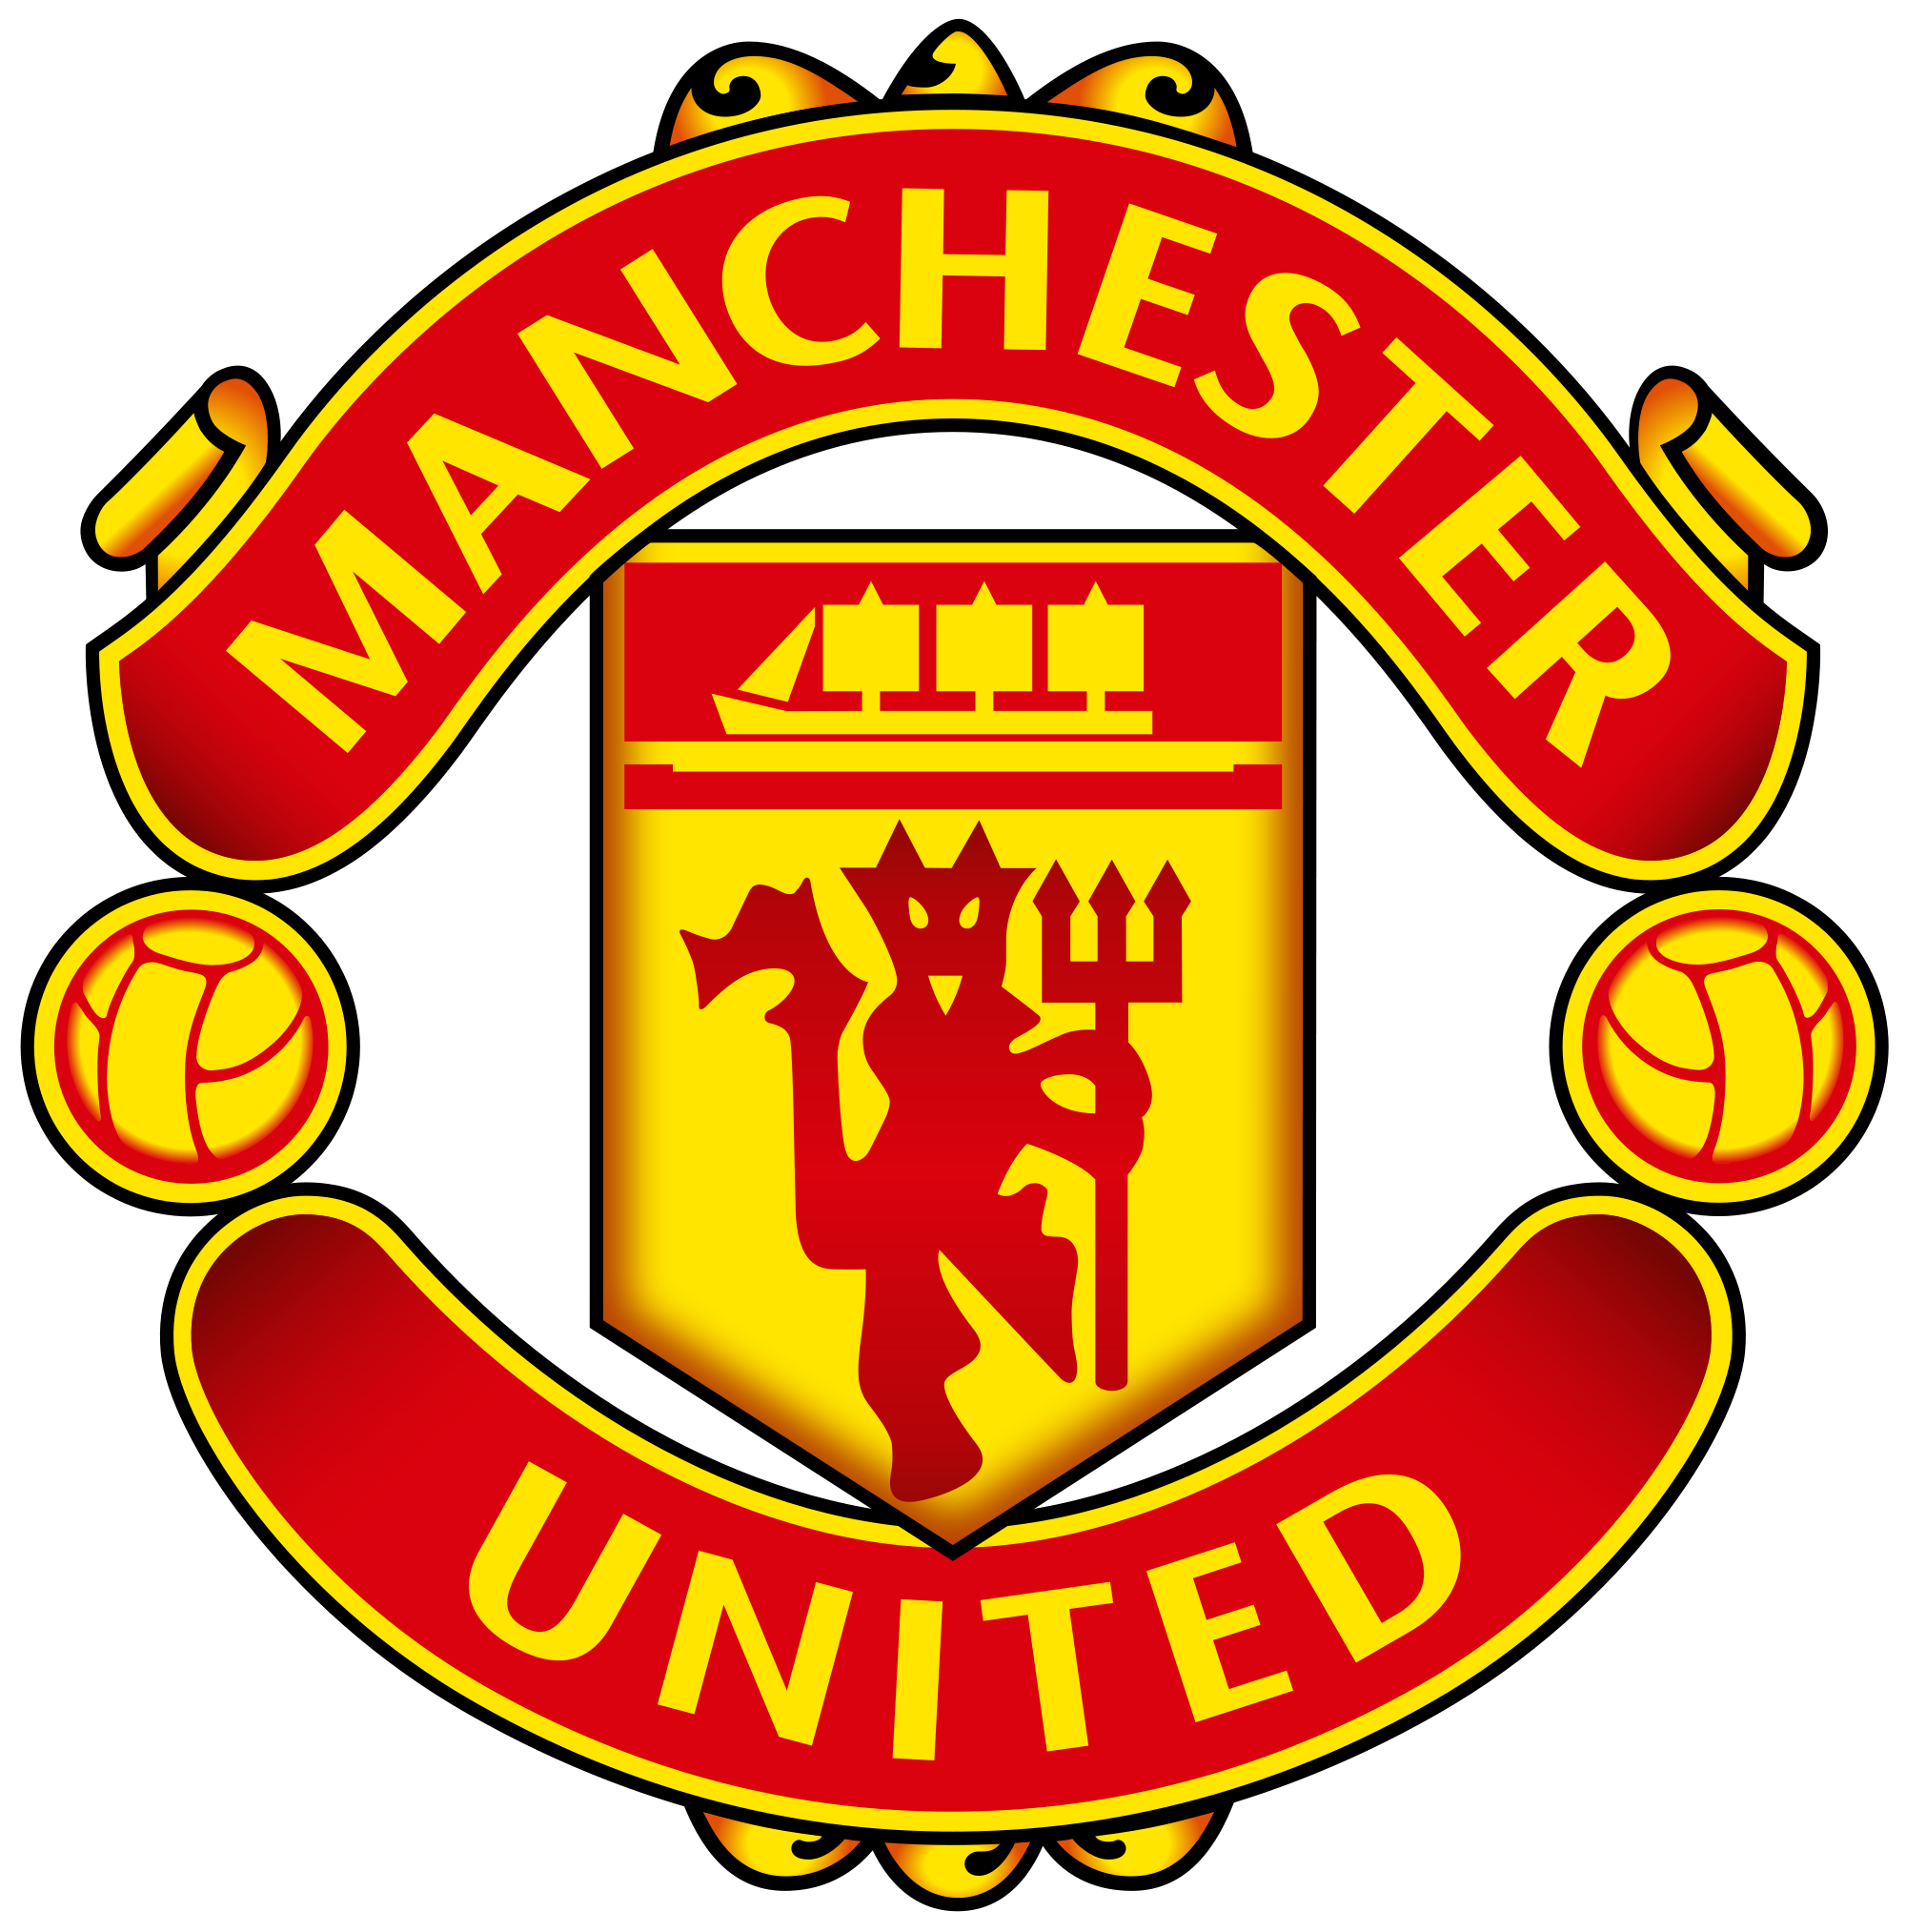 Manchester united club . Football clipart logo